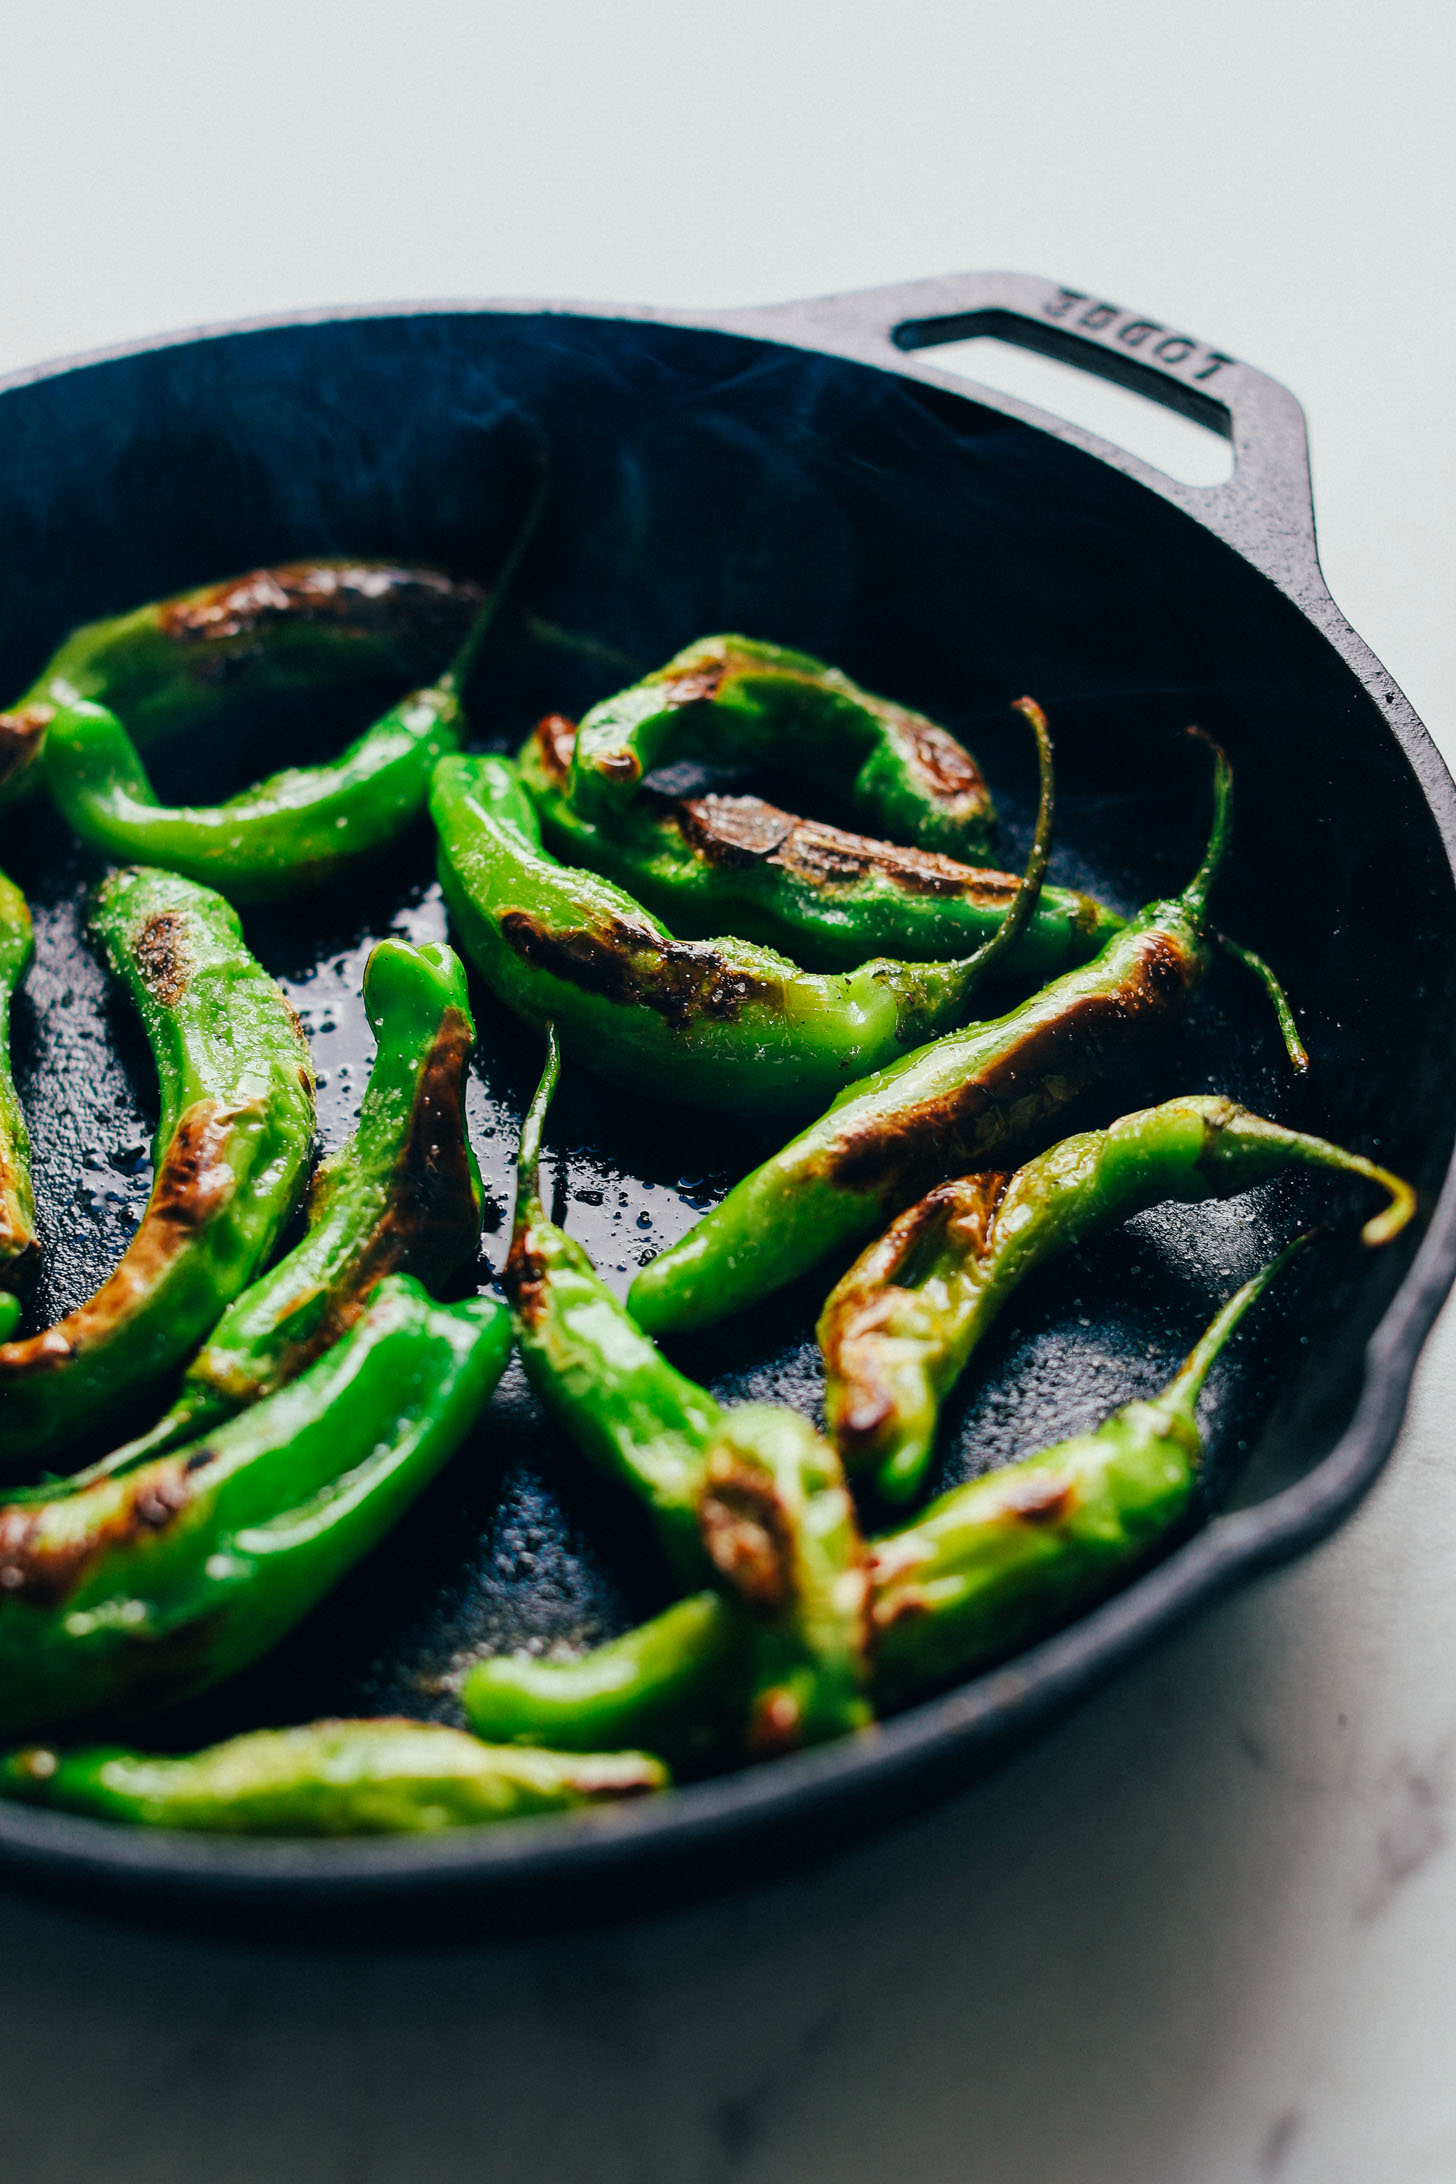 Pan roasting shishito peppers in a cast iron skillet